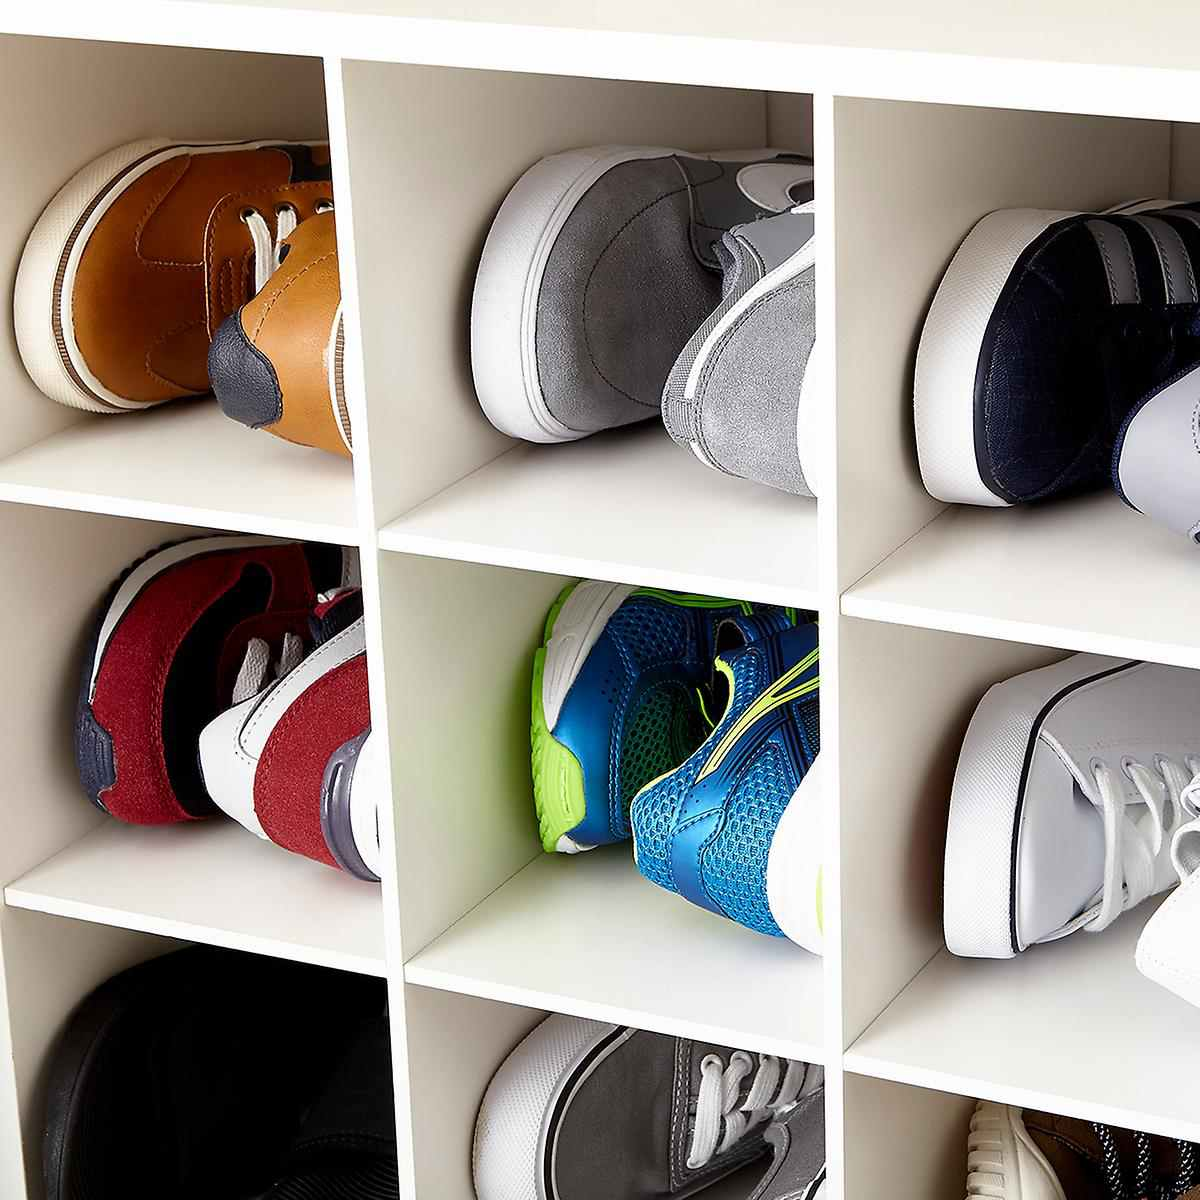 How to get rid of mold on shoe